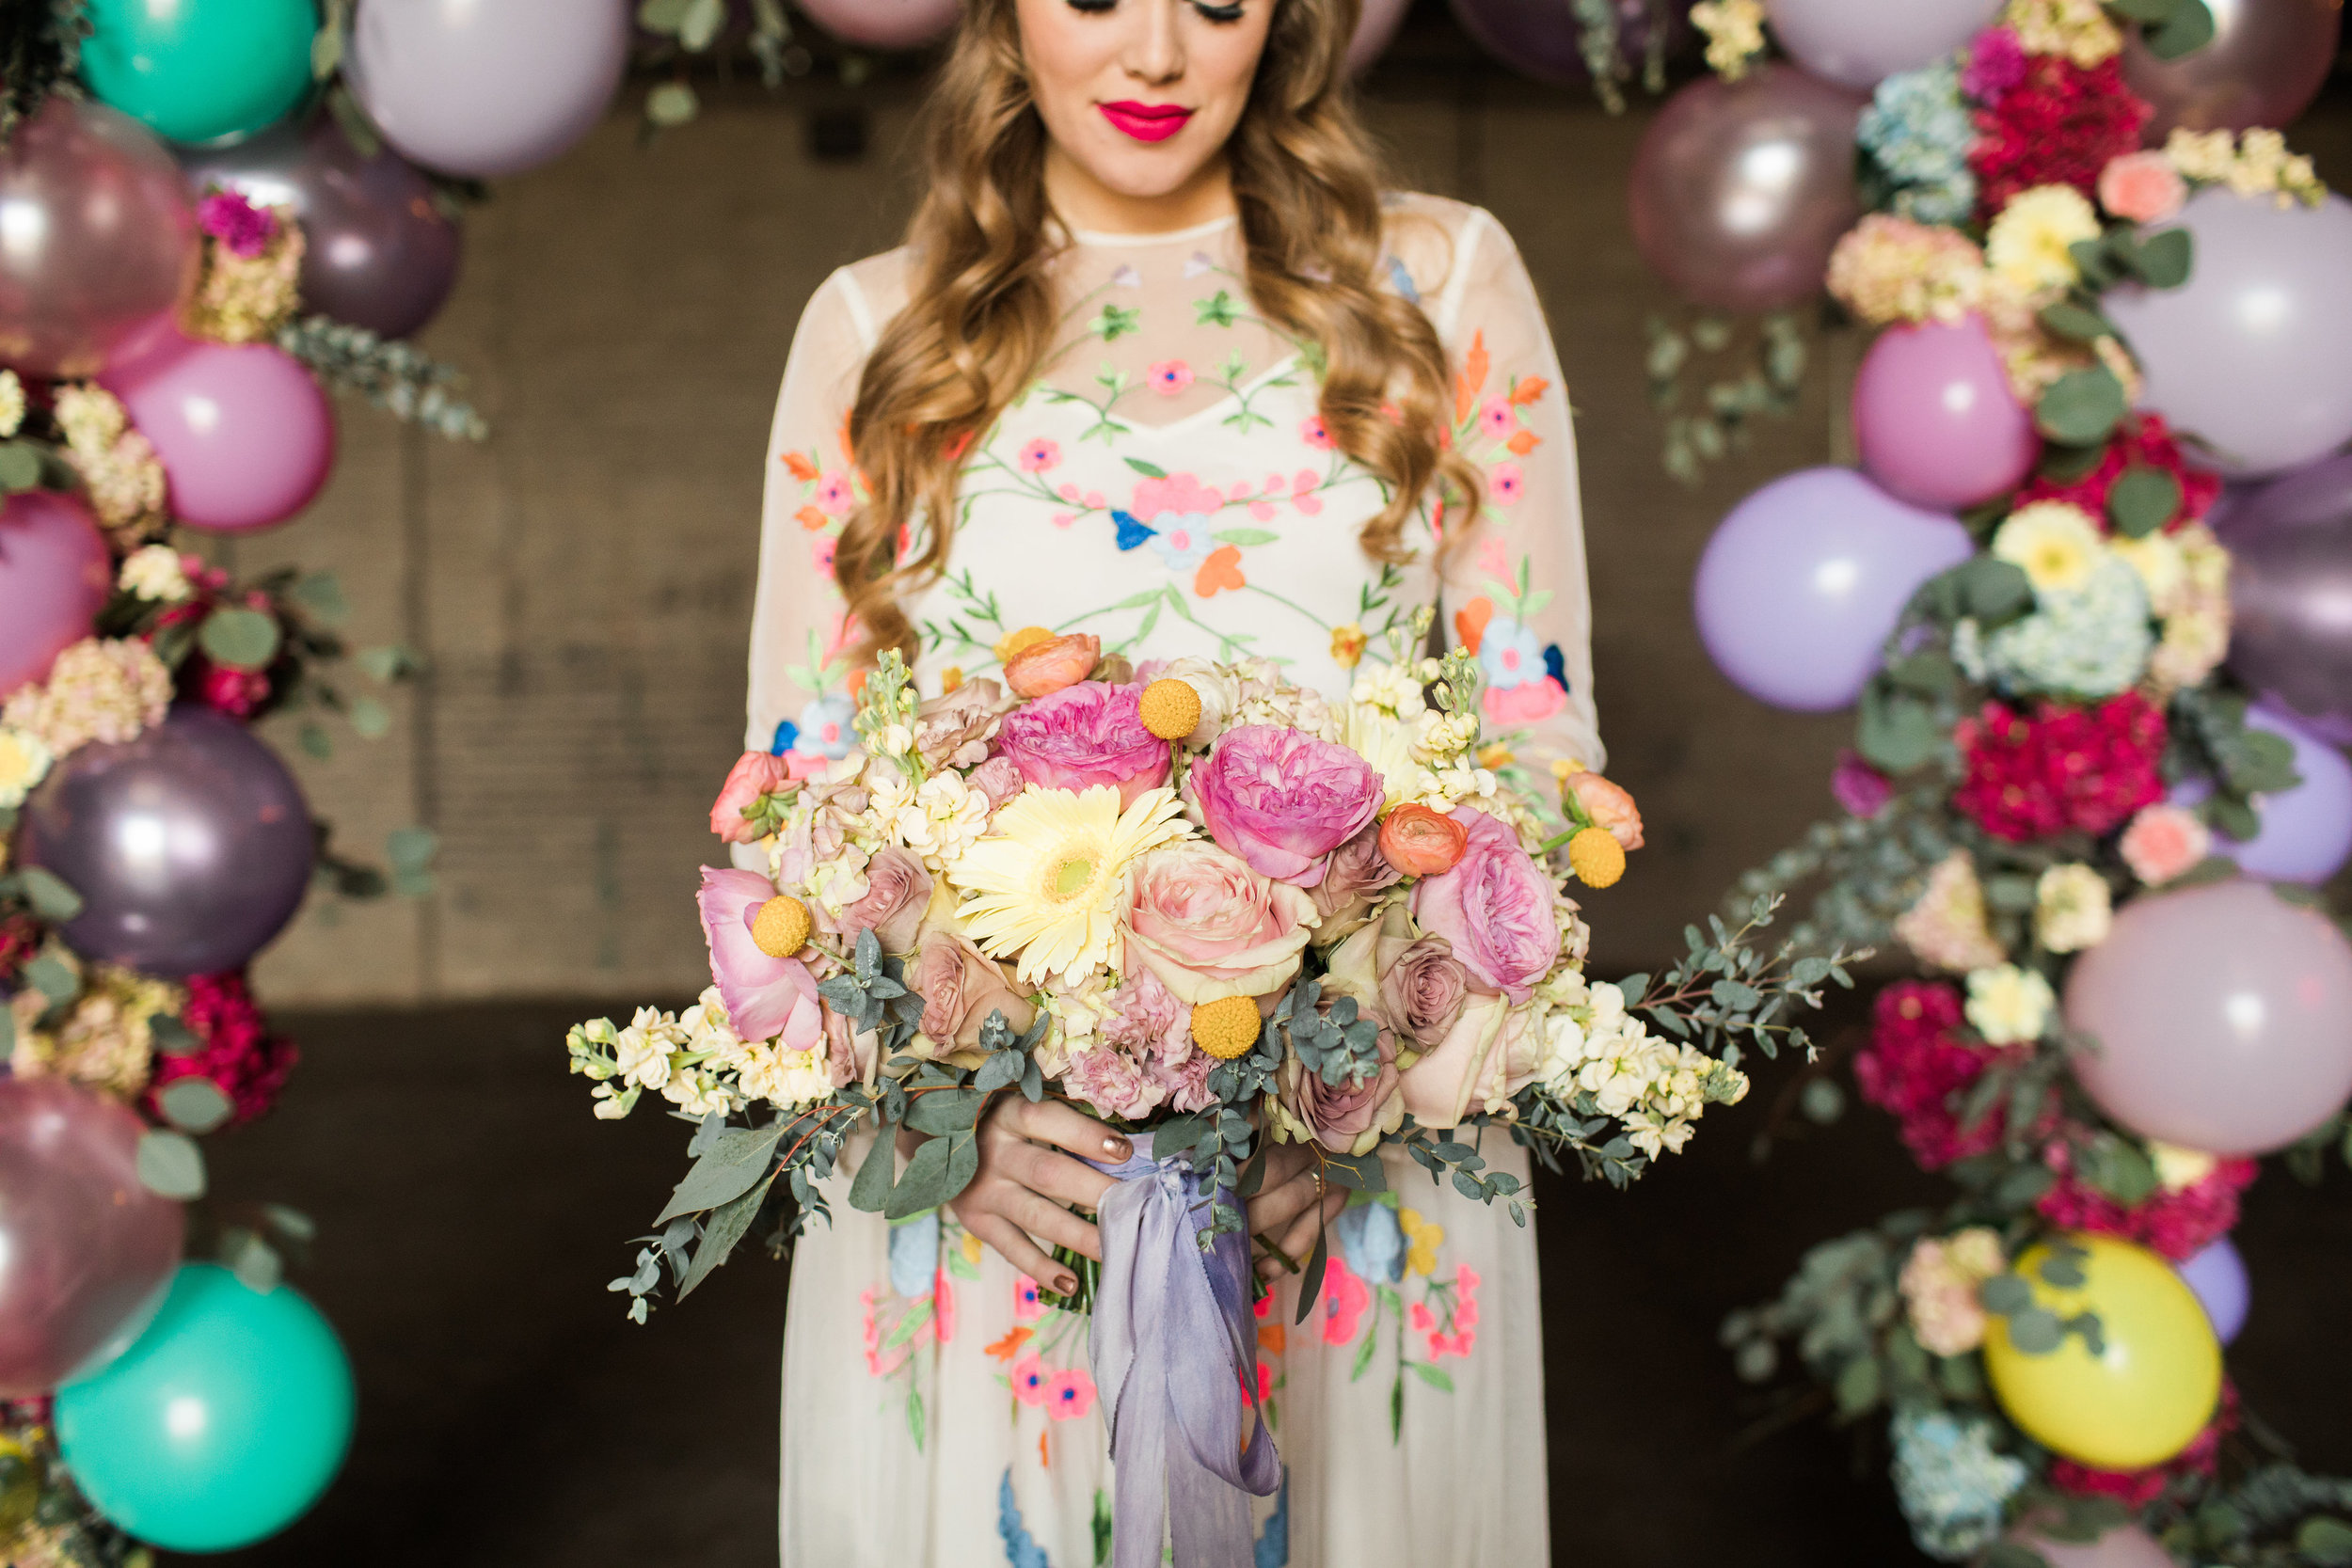 model Erin Marie, floral Design by  Floral Sense , ribbon by Rosemarine Textiles, photo by  Casey Brodley , hair and makeup by  Kyle Ann